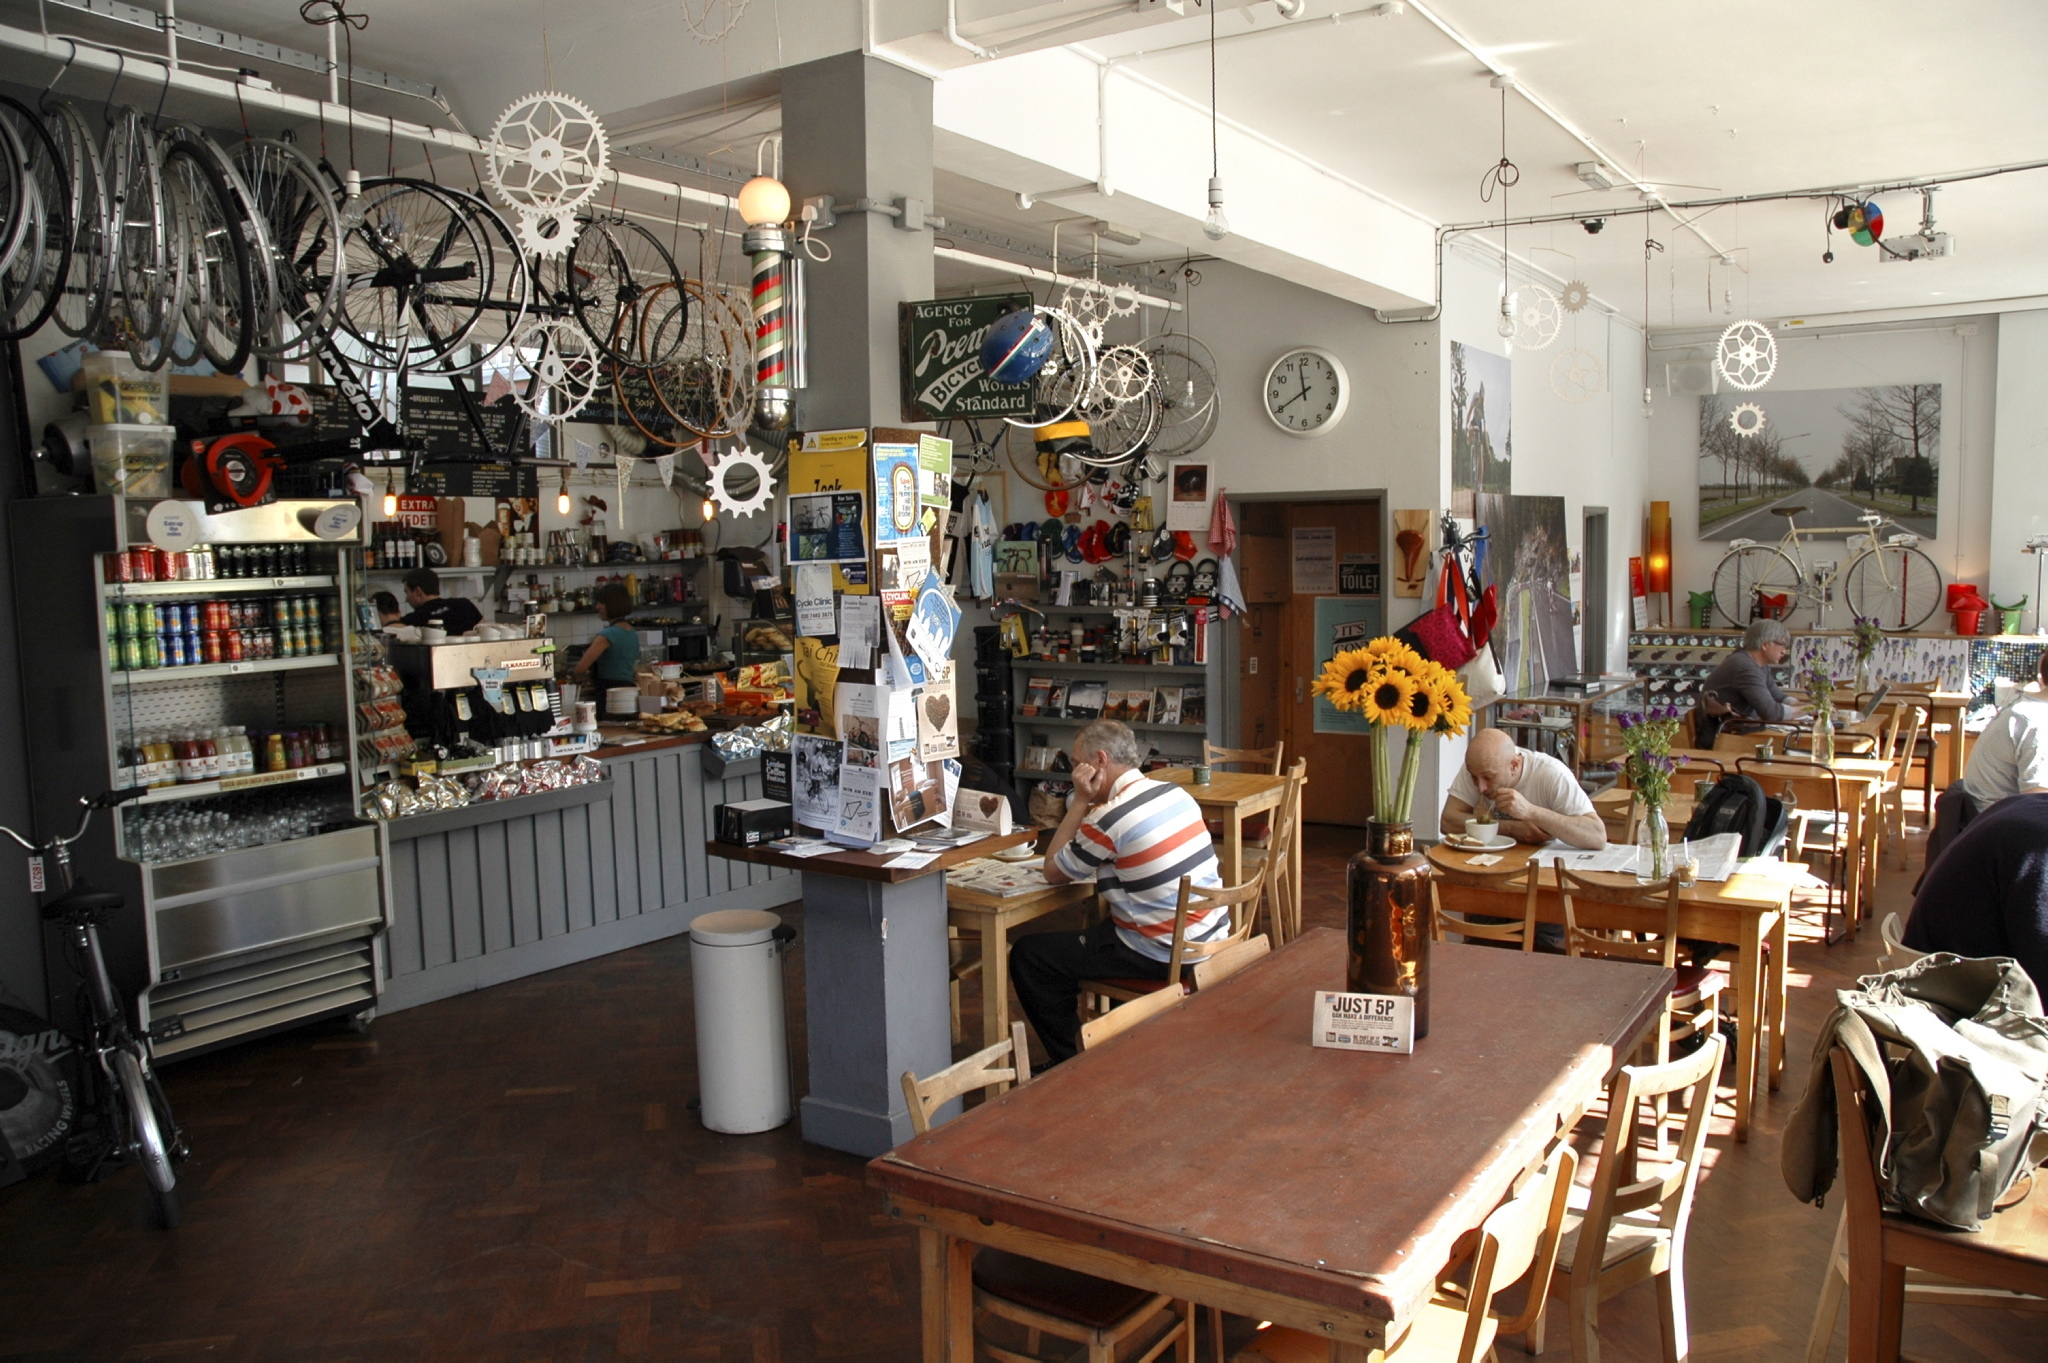 Get a caffeine fix while your bike's fixed at Look Mum No Hands!